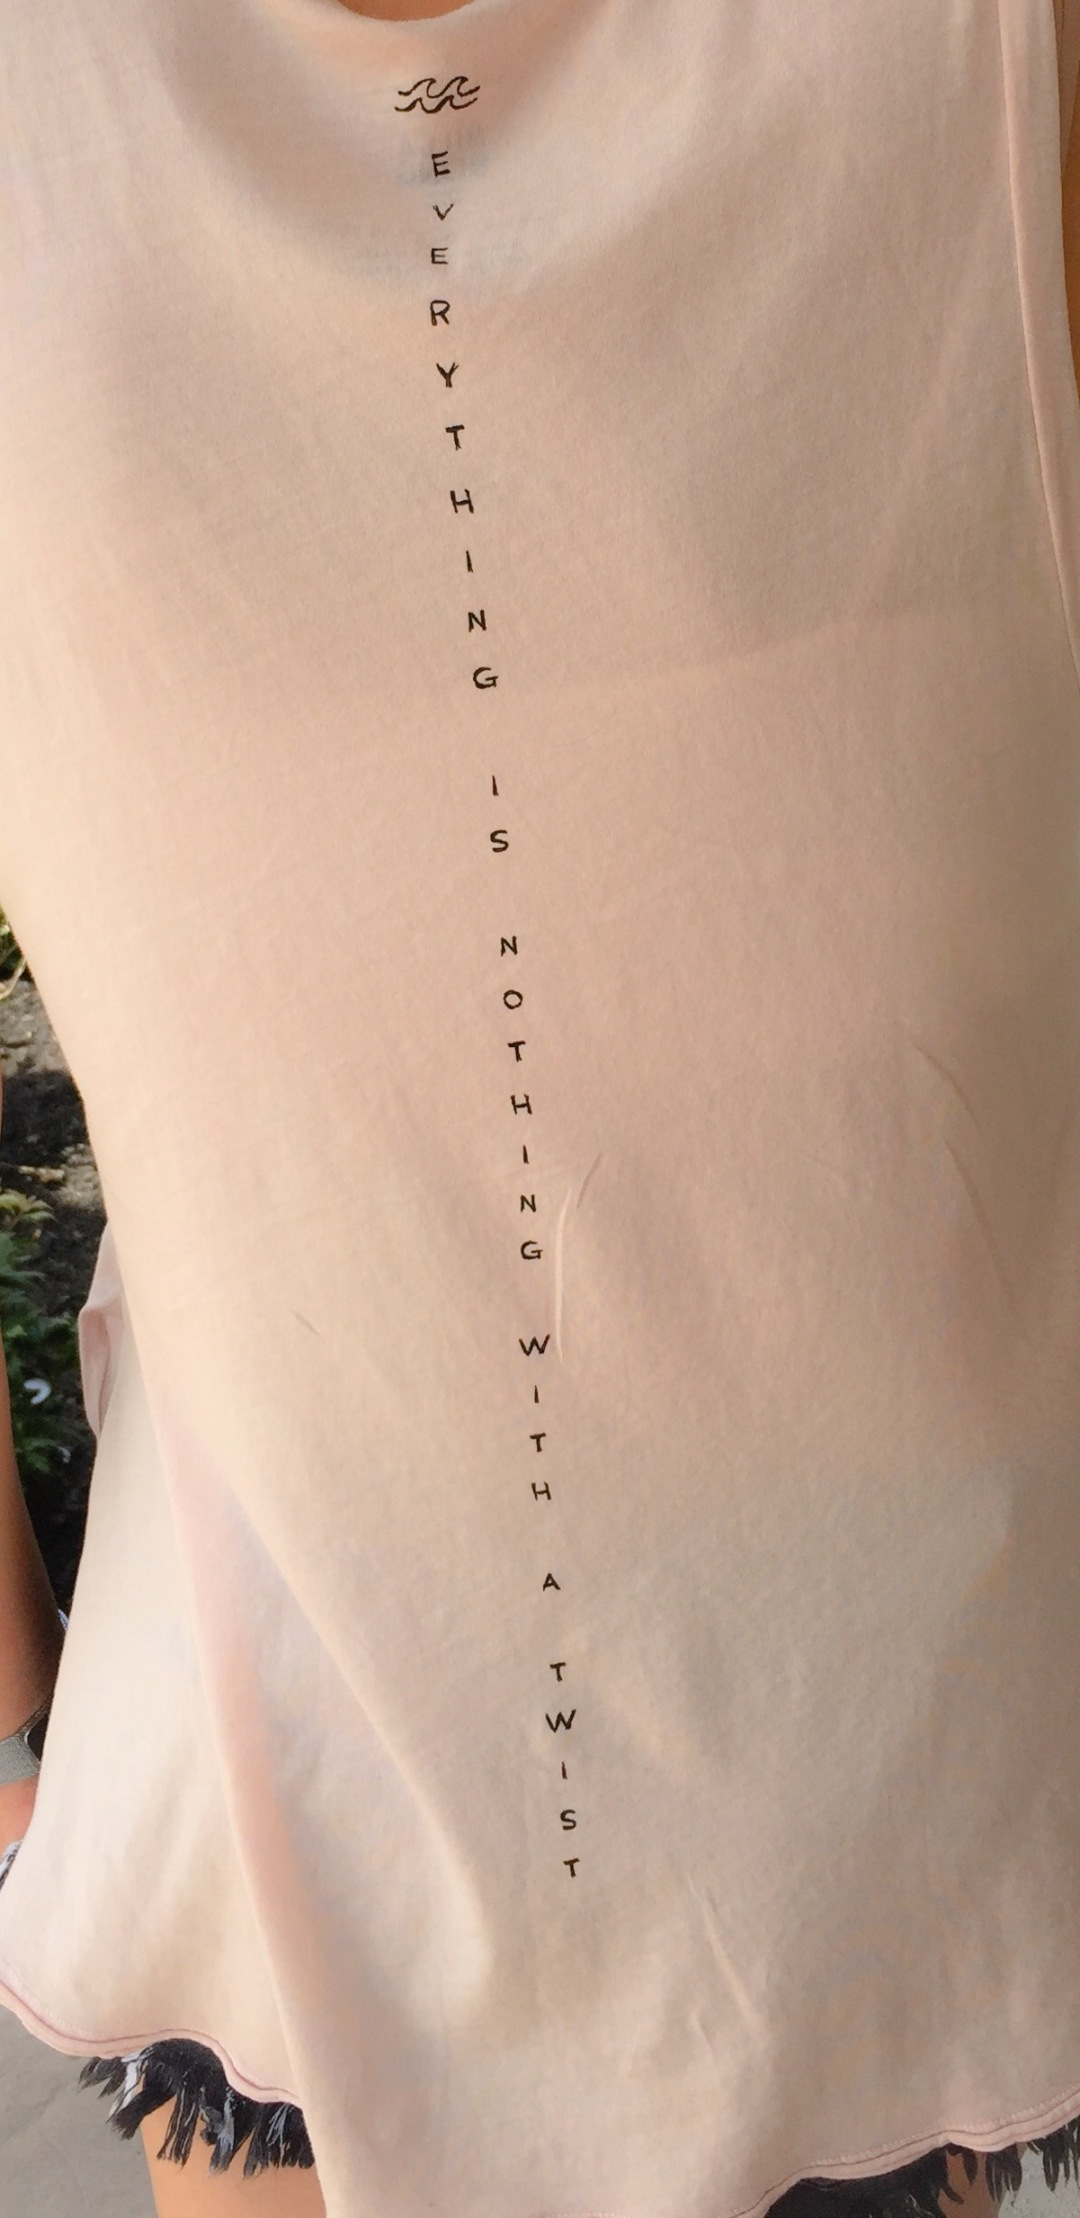 Really thoughtful saying on the back of this Billabong tee.